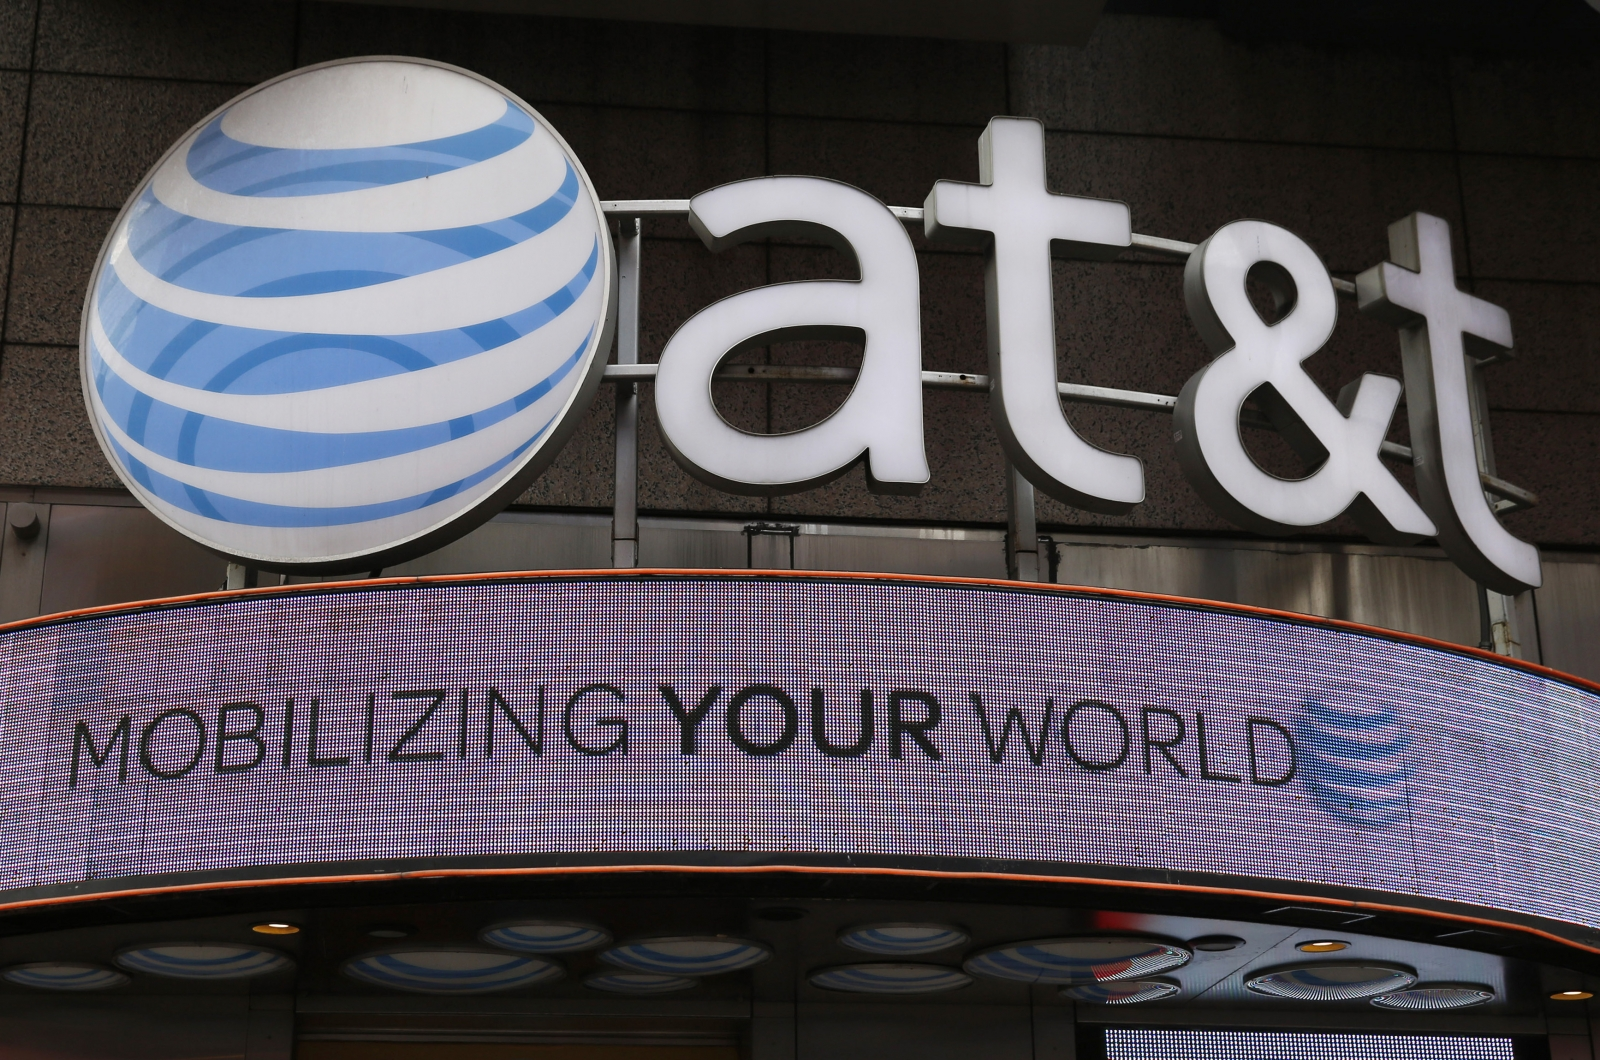 AT&T reveals it is under constant attack and wards off over 200,000 malware attacks everyday